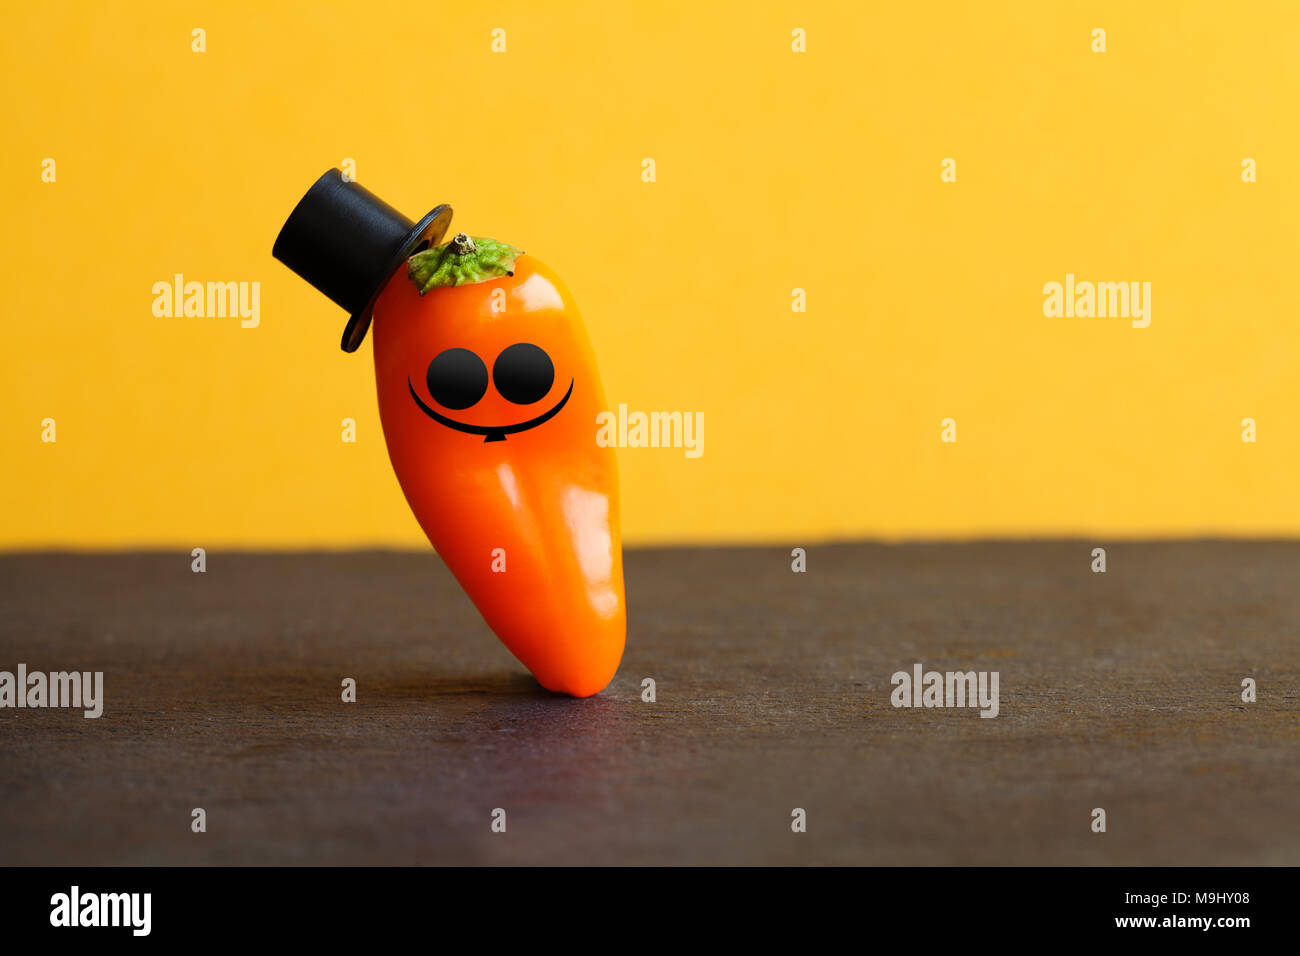 Funny senor pepper, decorated sunglasses mustache, black hats. Funny old fashioned orange vegetable character, black stone yellow background. Creative food design poster. - Stock Image